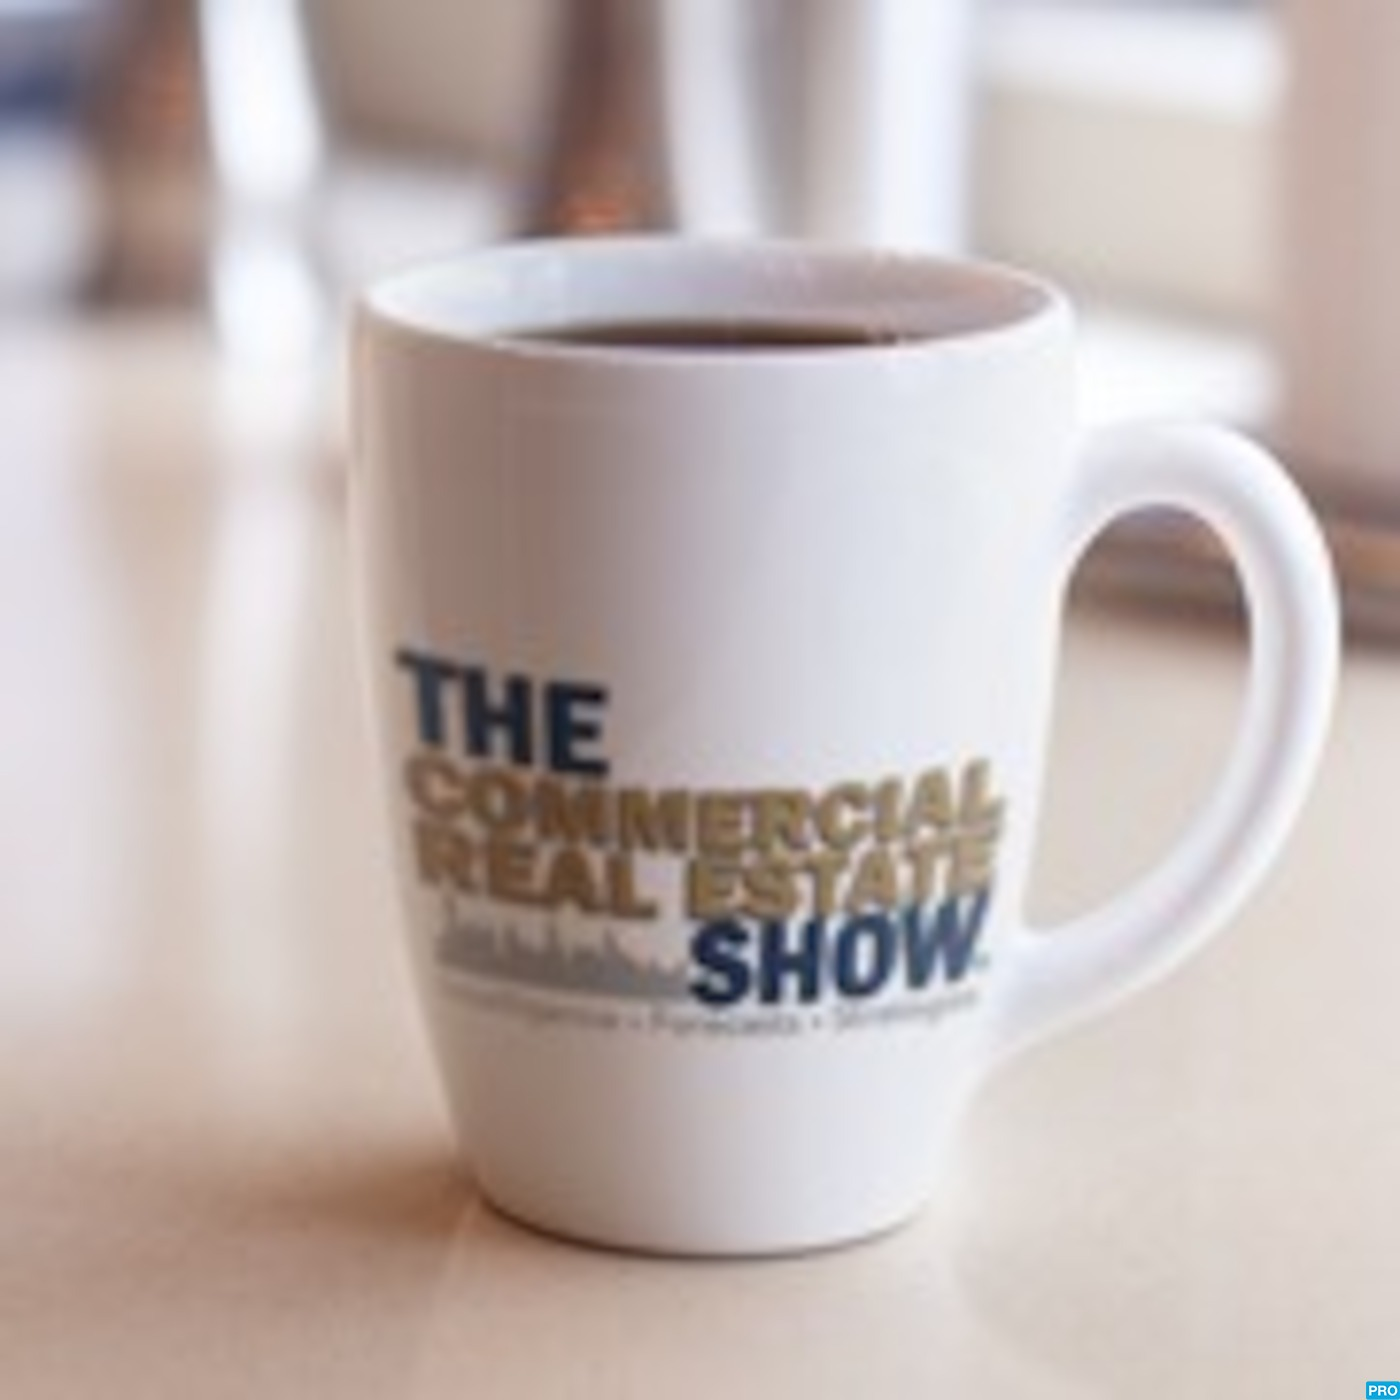 The Commercial Real Estate Show Logo